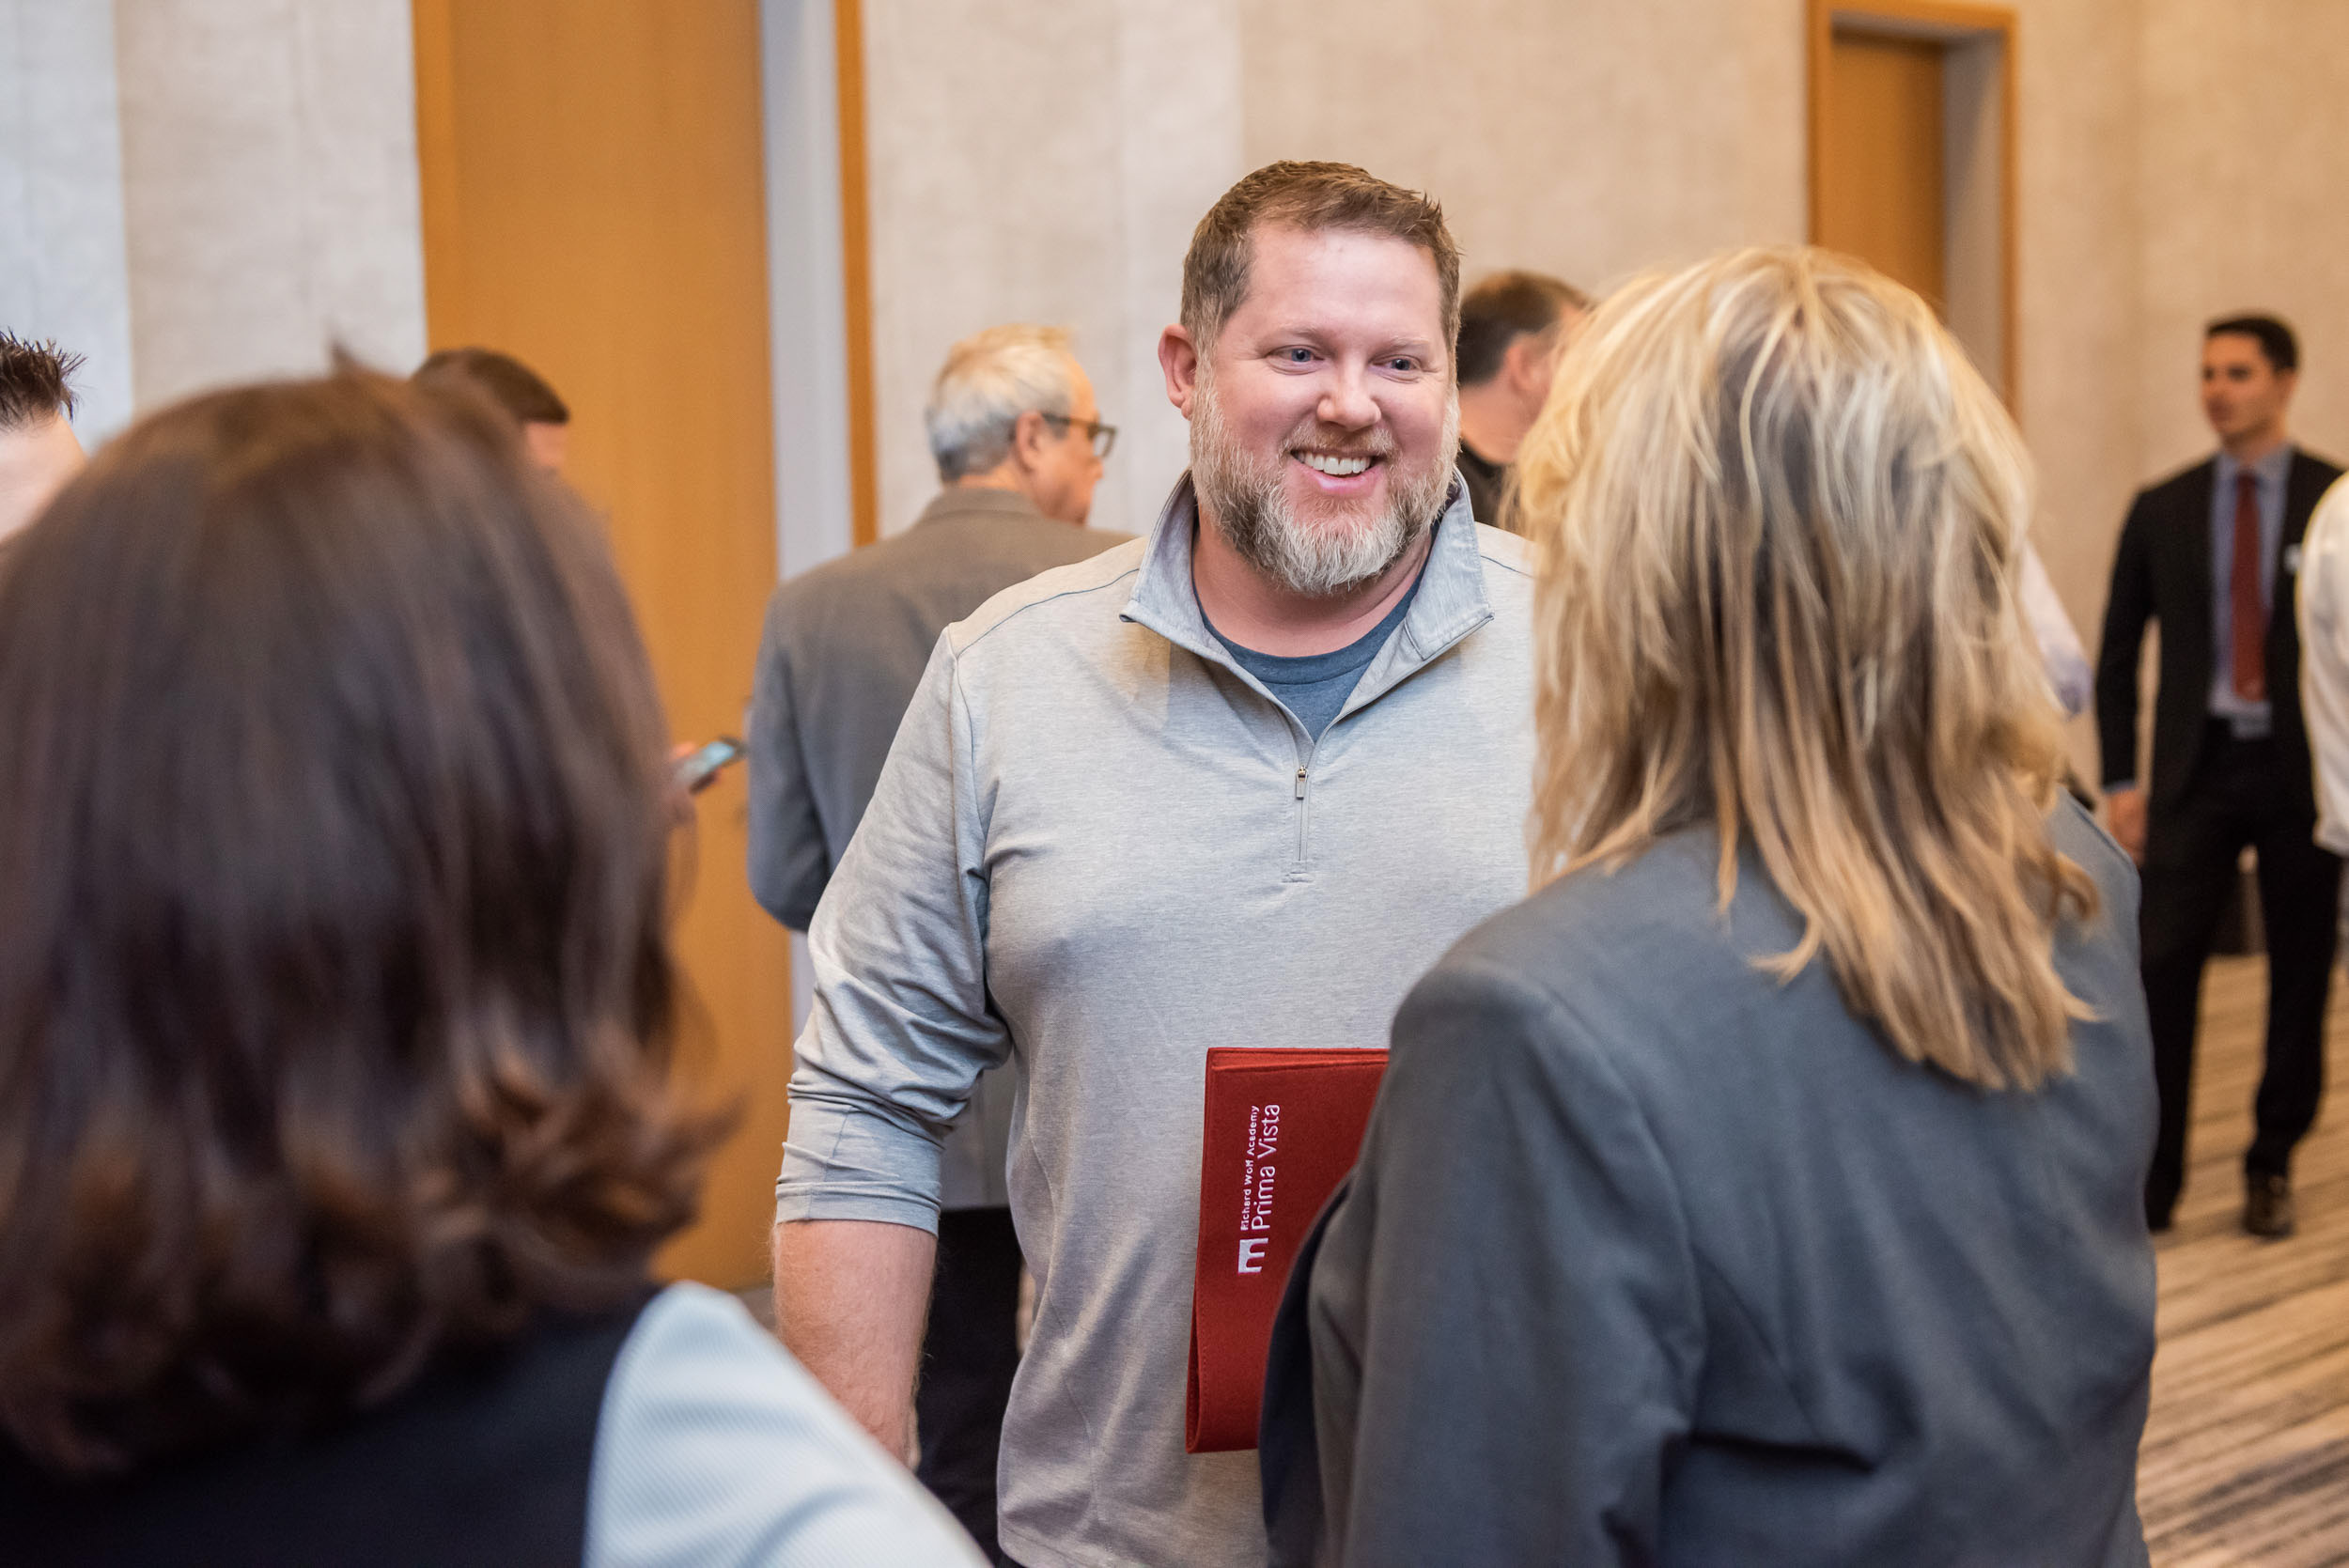 2019 National Sales and Marketing Meeting - mark campbell photography-13_Resized_Resized.jpg